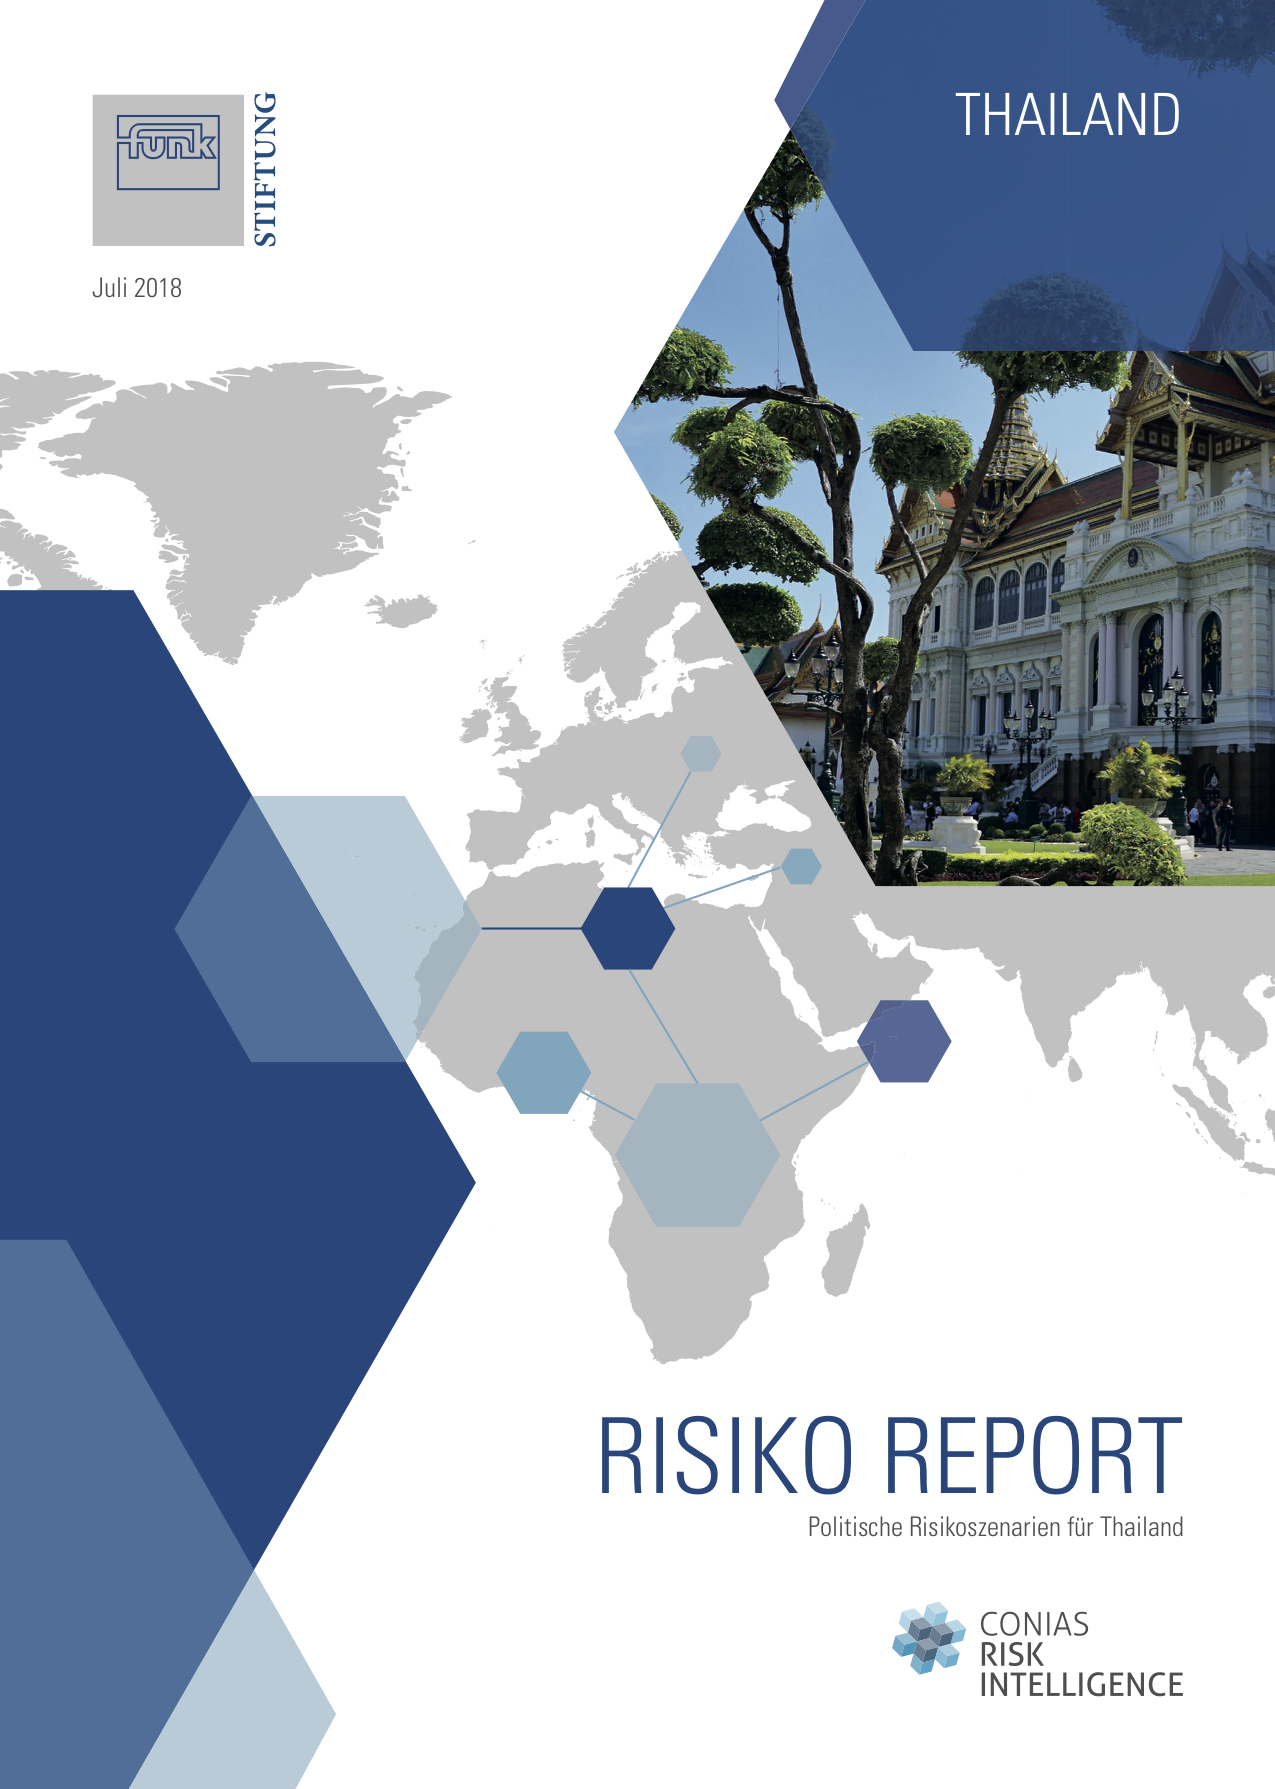 Risiko Report Thailand